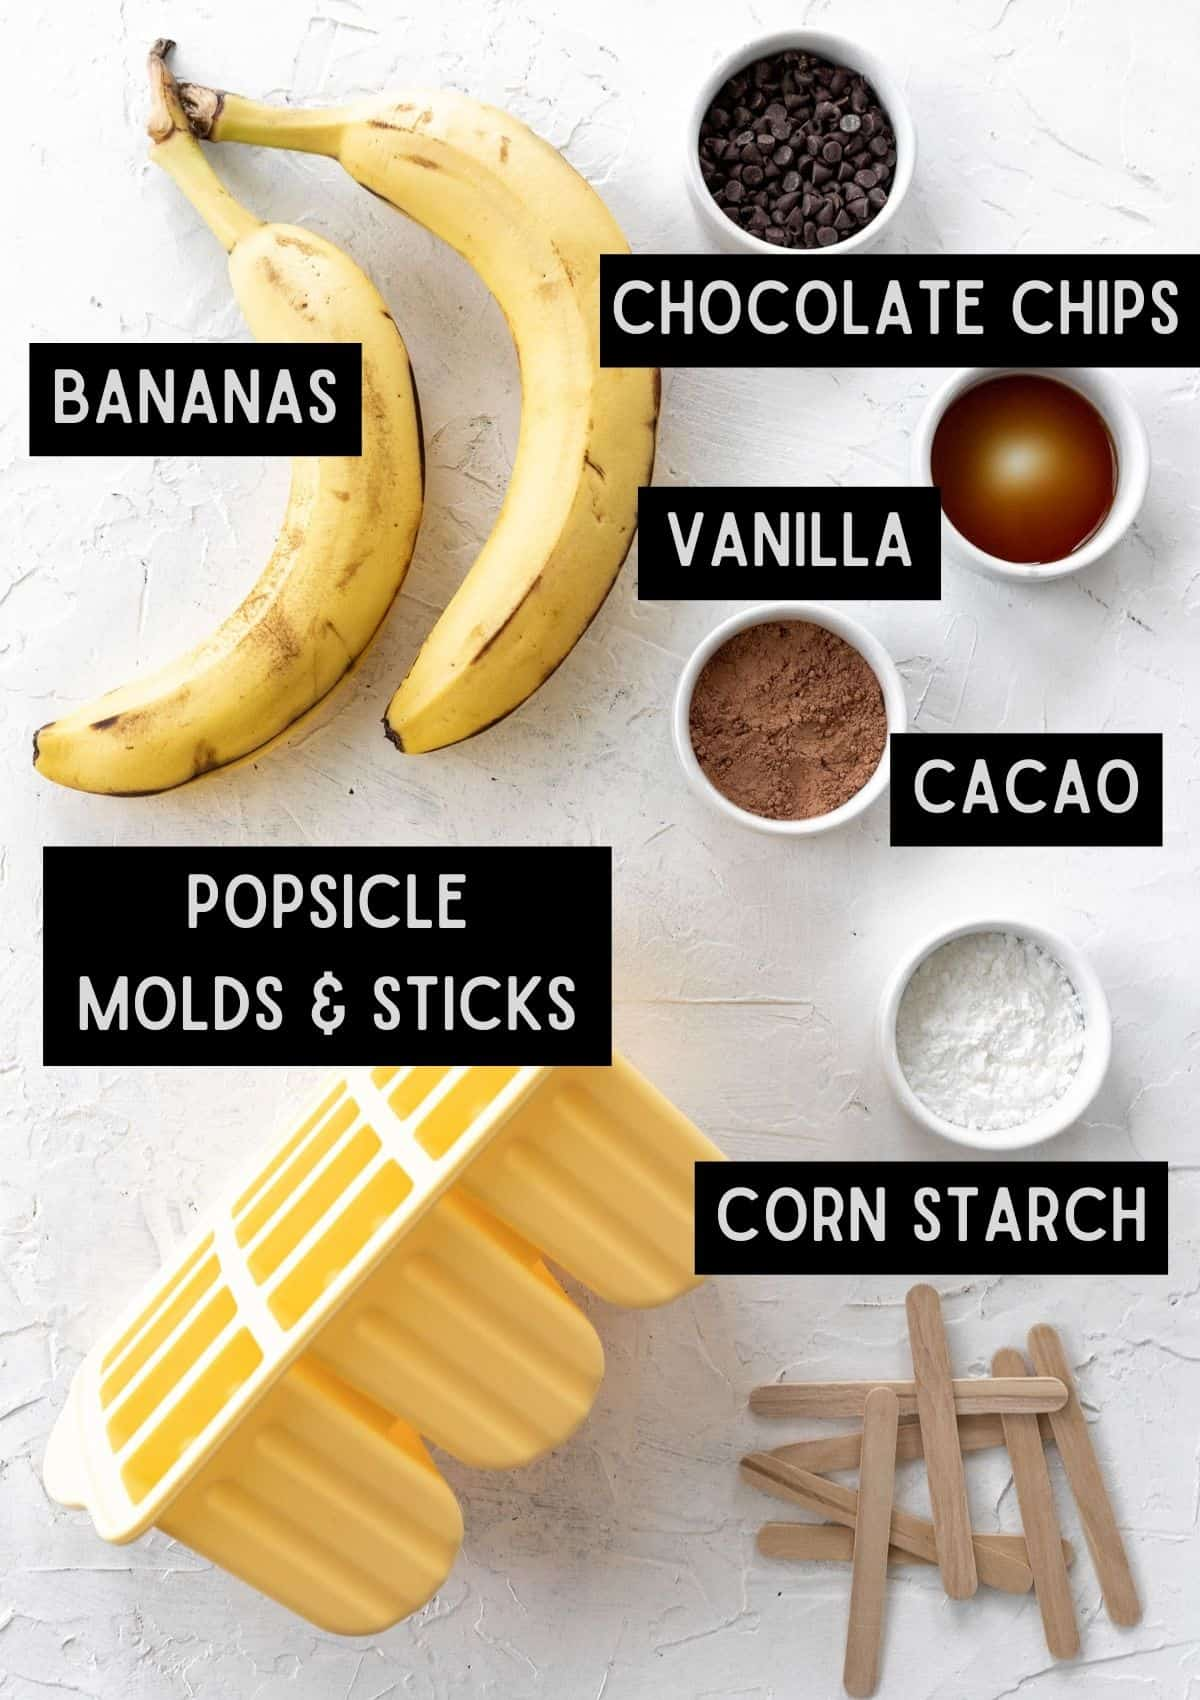 Labelled ingredients for chocolate popsicles (see recipe for details).